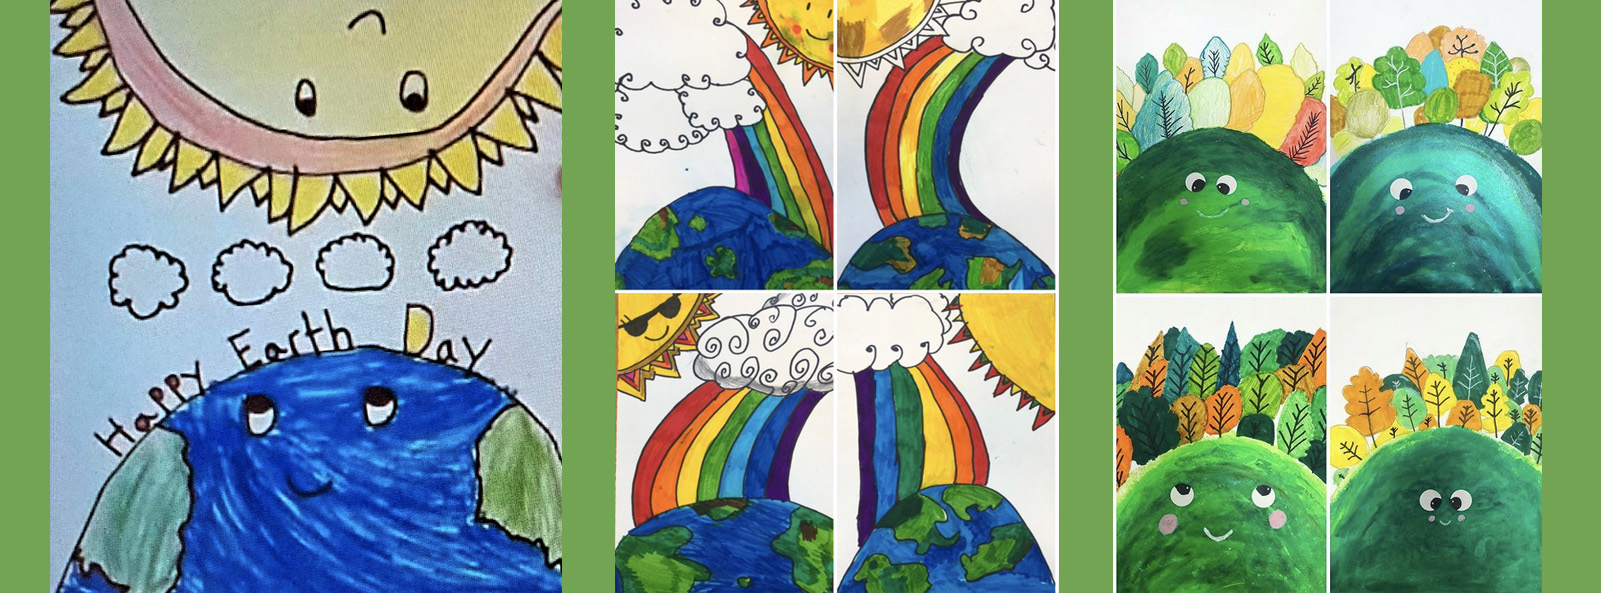 Student artwork for Earth Day